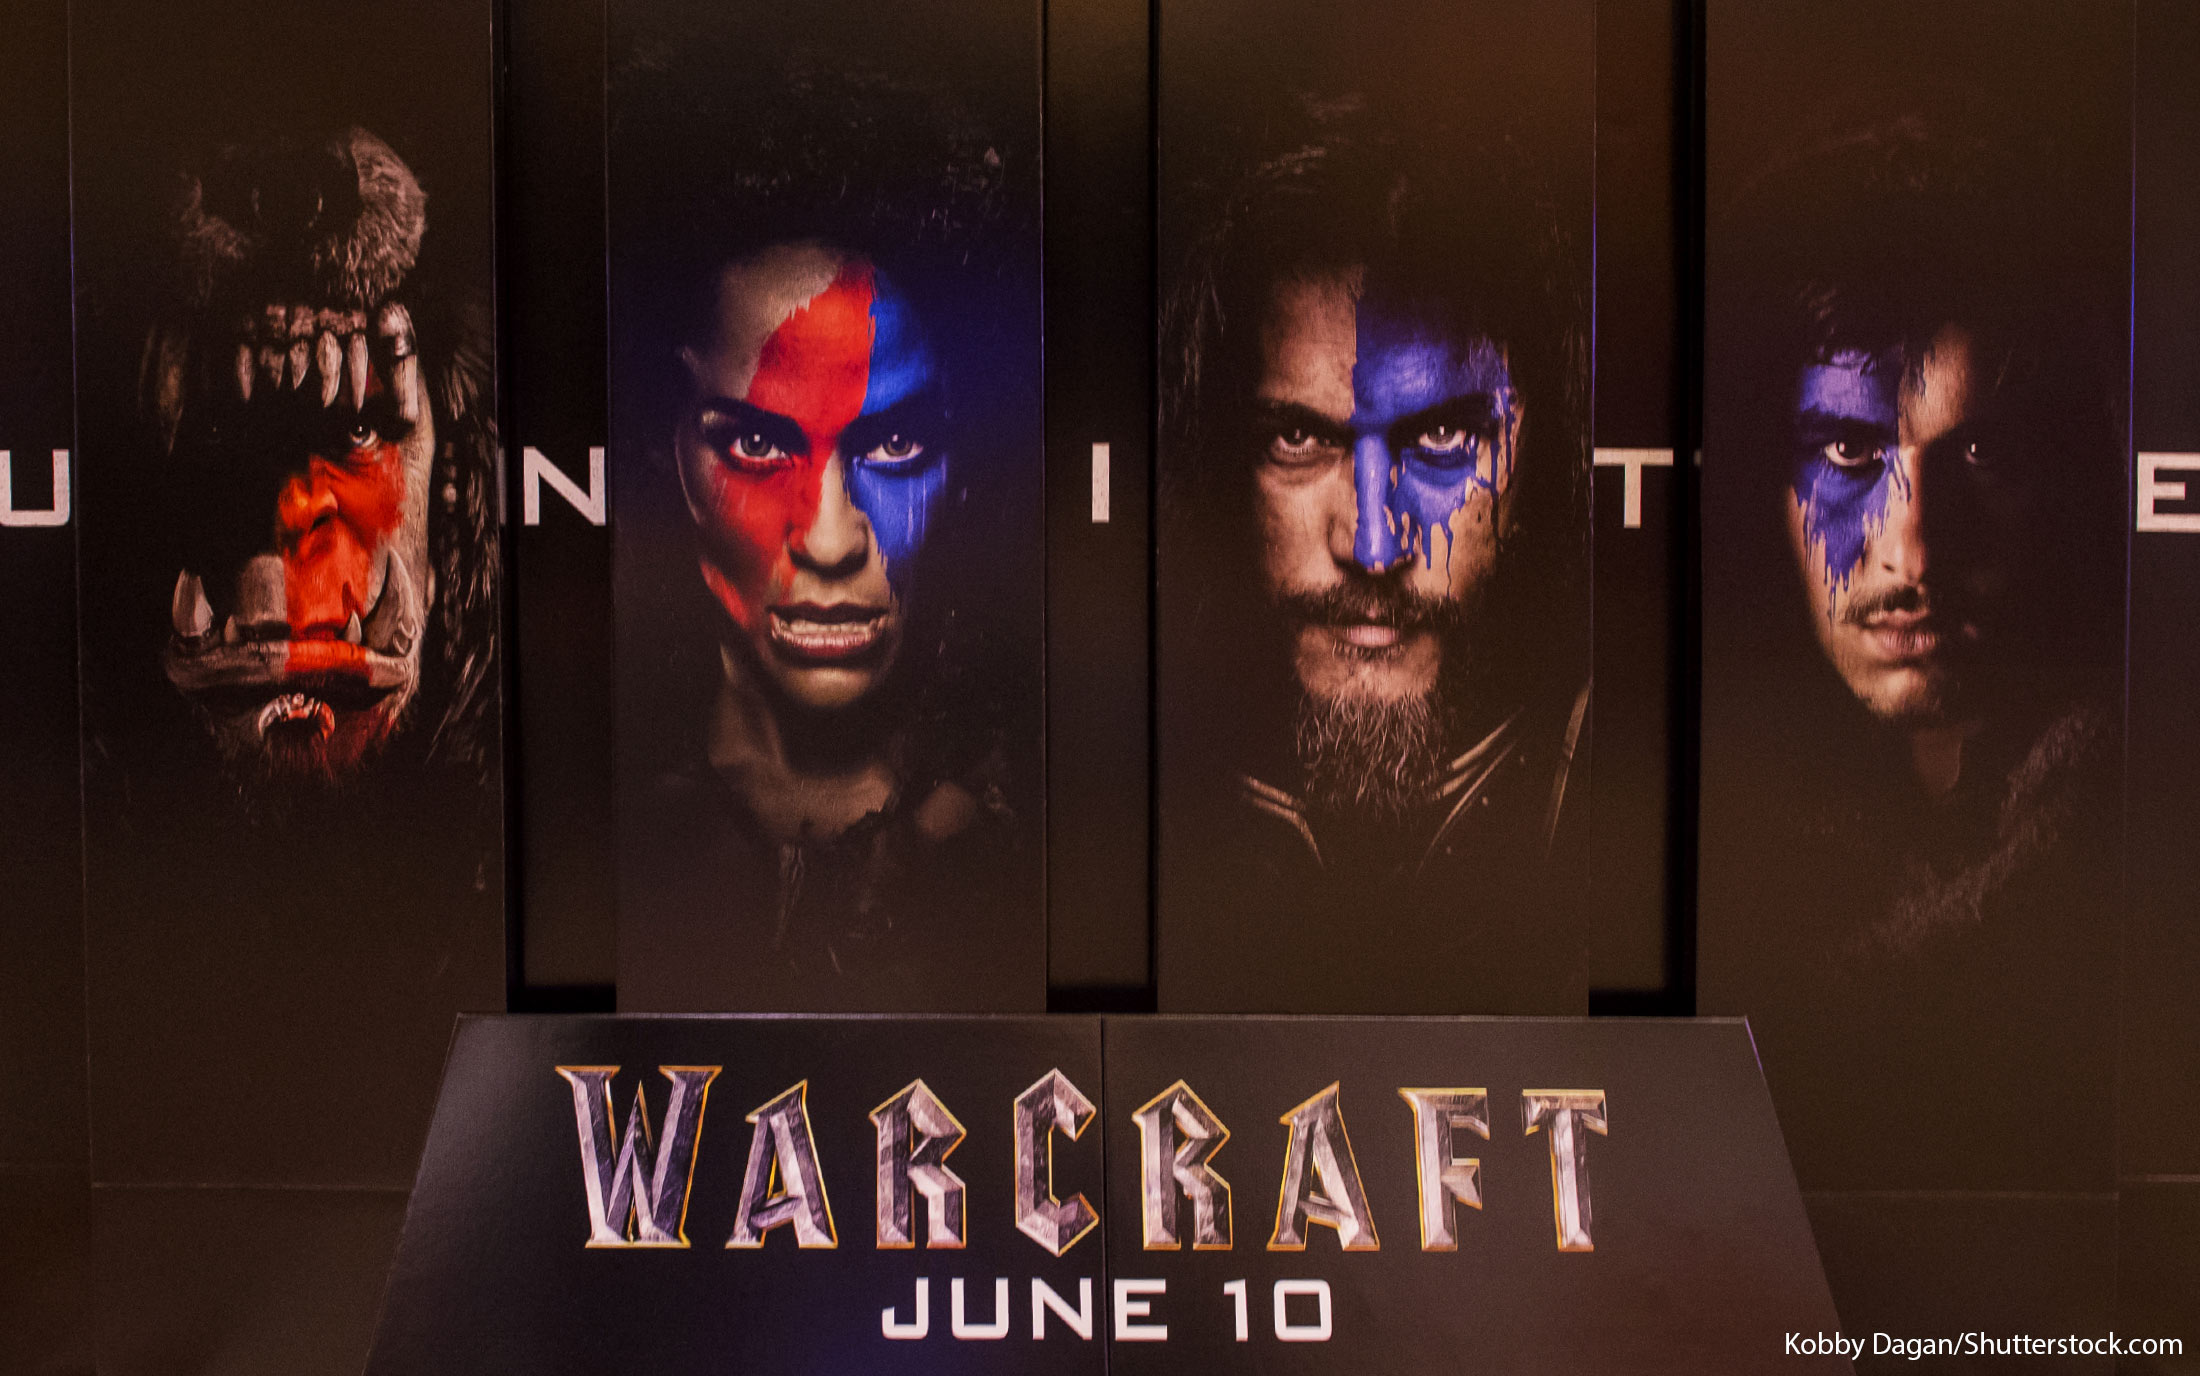 'World of Warcraft' movie cast